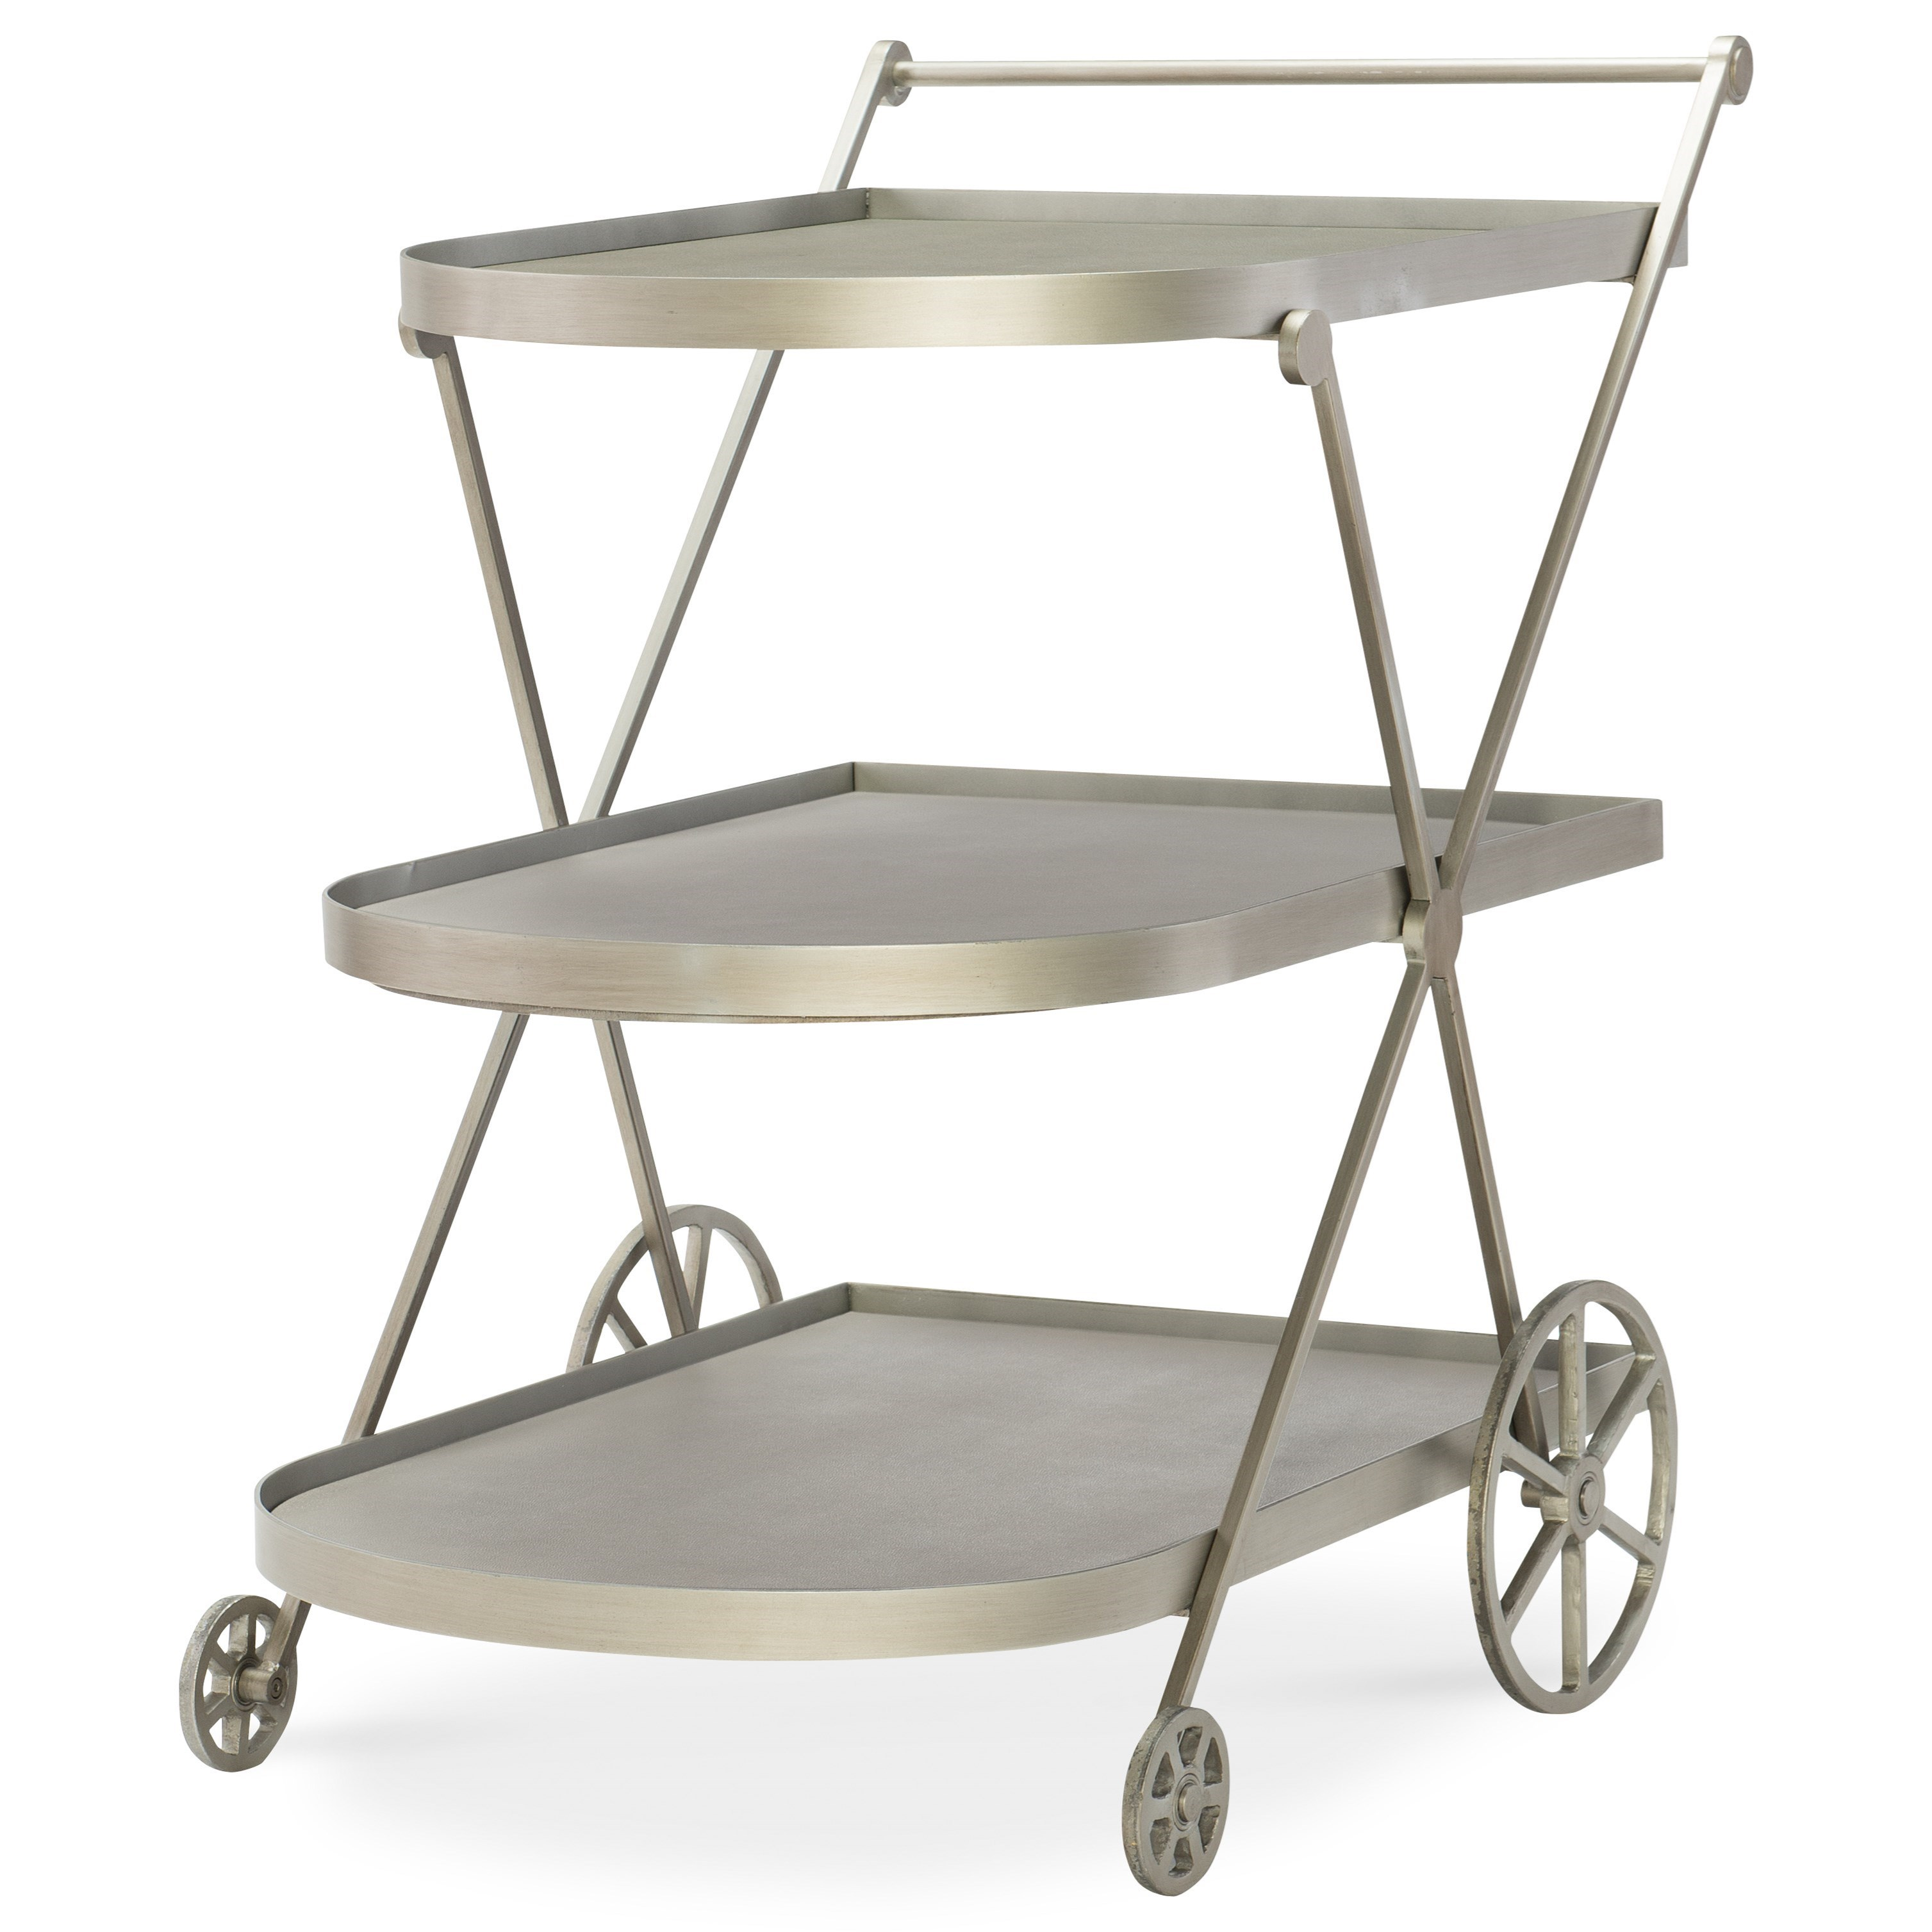 Rachael Ray Home by Legacy Classic Soho Serving Cart - Item Number: 6020-250